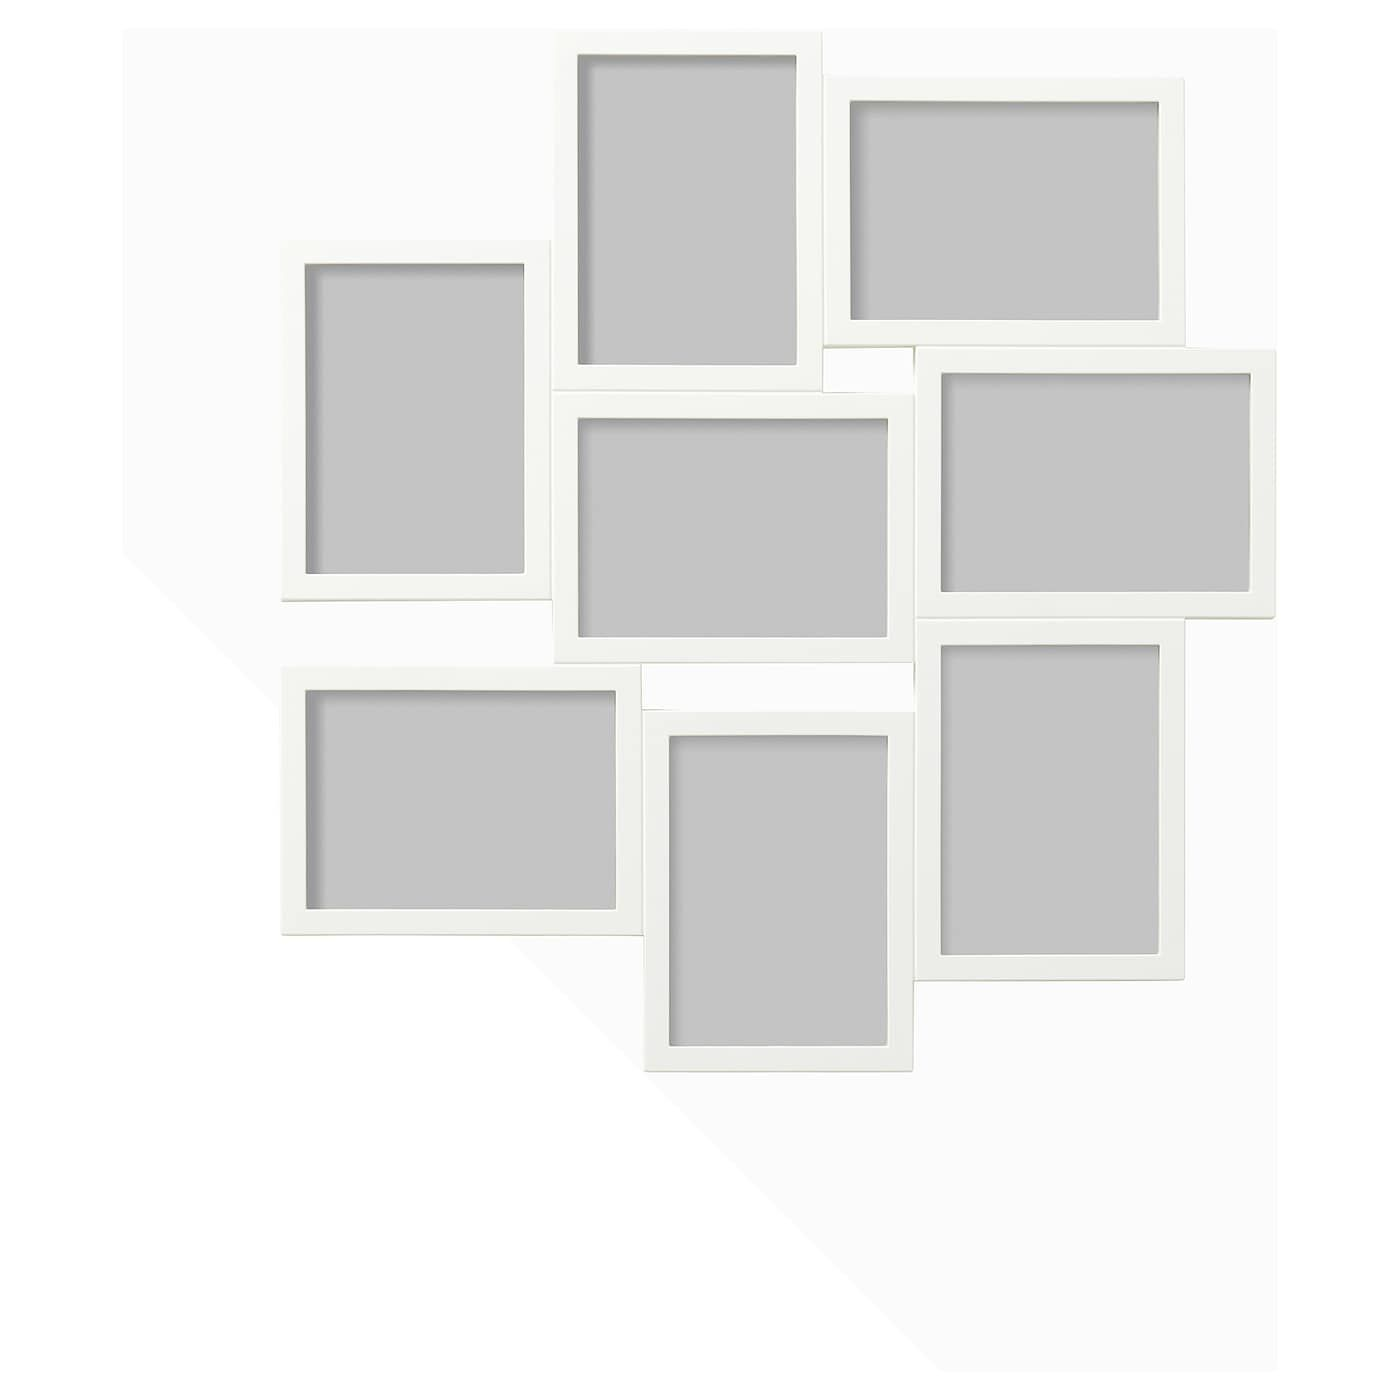 Ikea Vaxbo White Collage Frame For 8 Photos In 2020 Collage